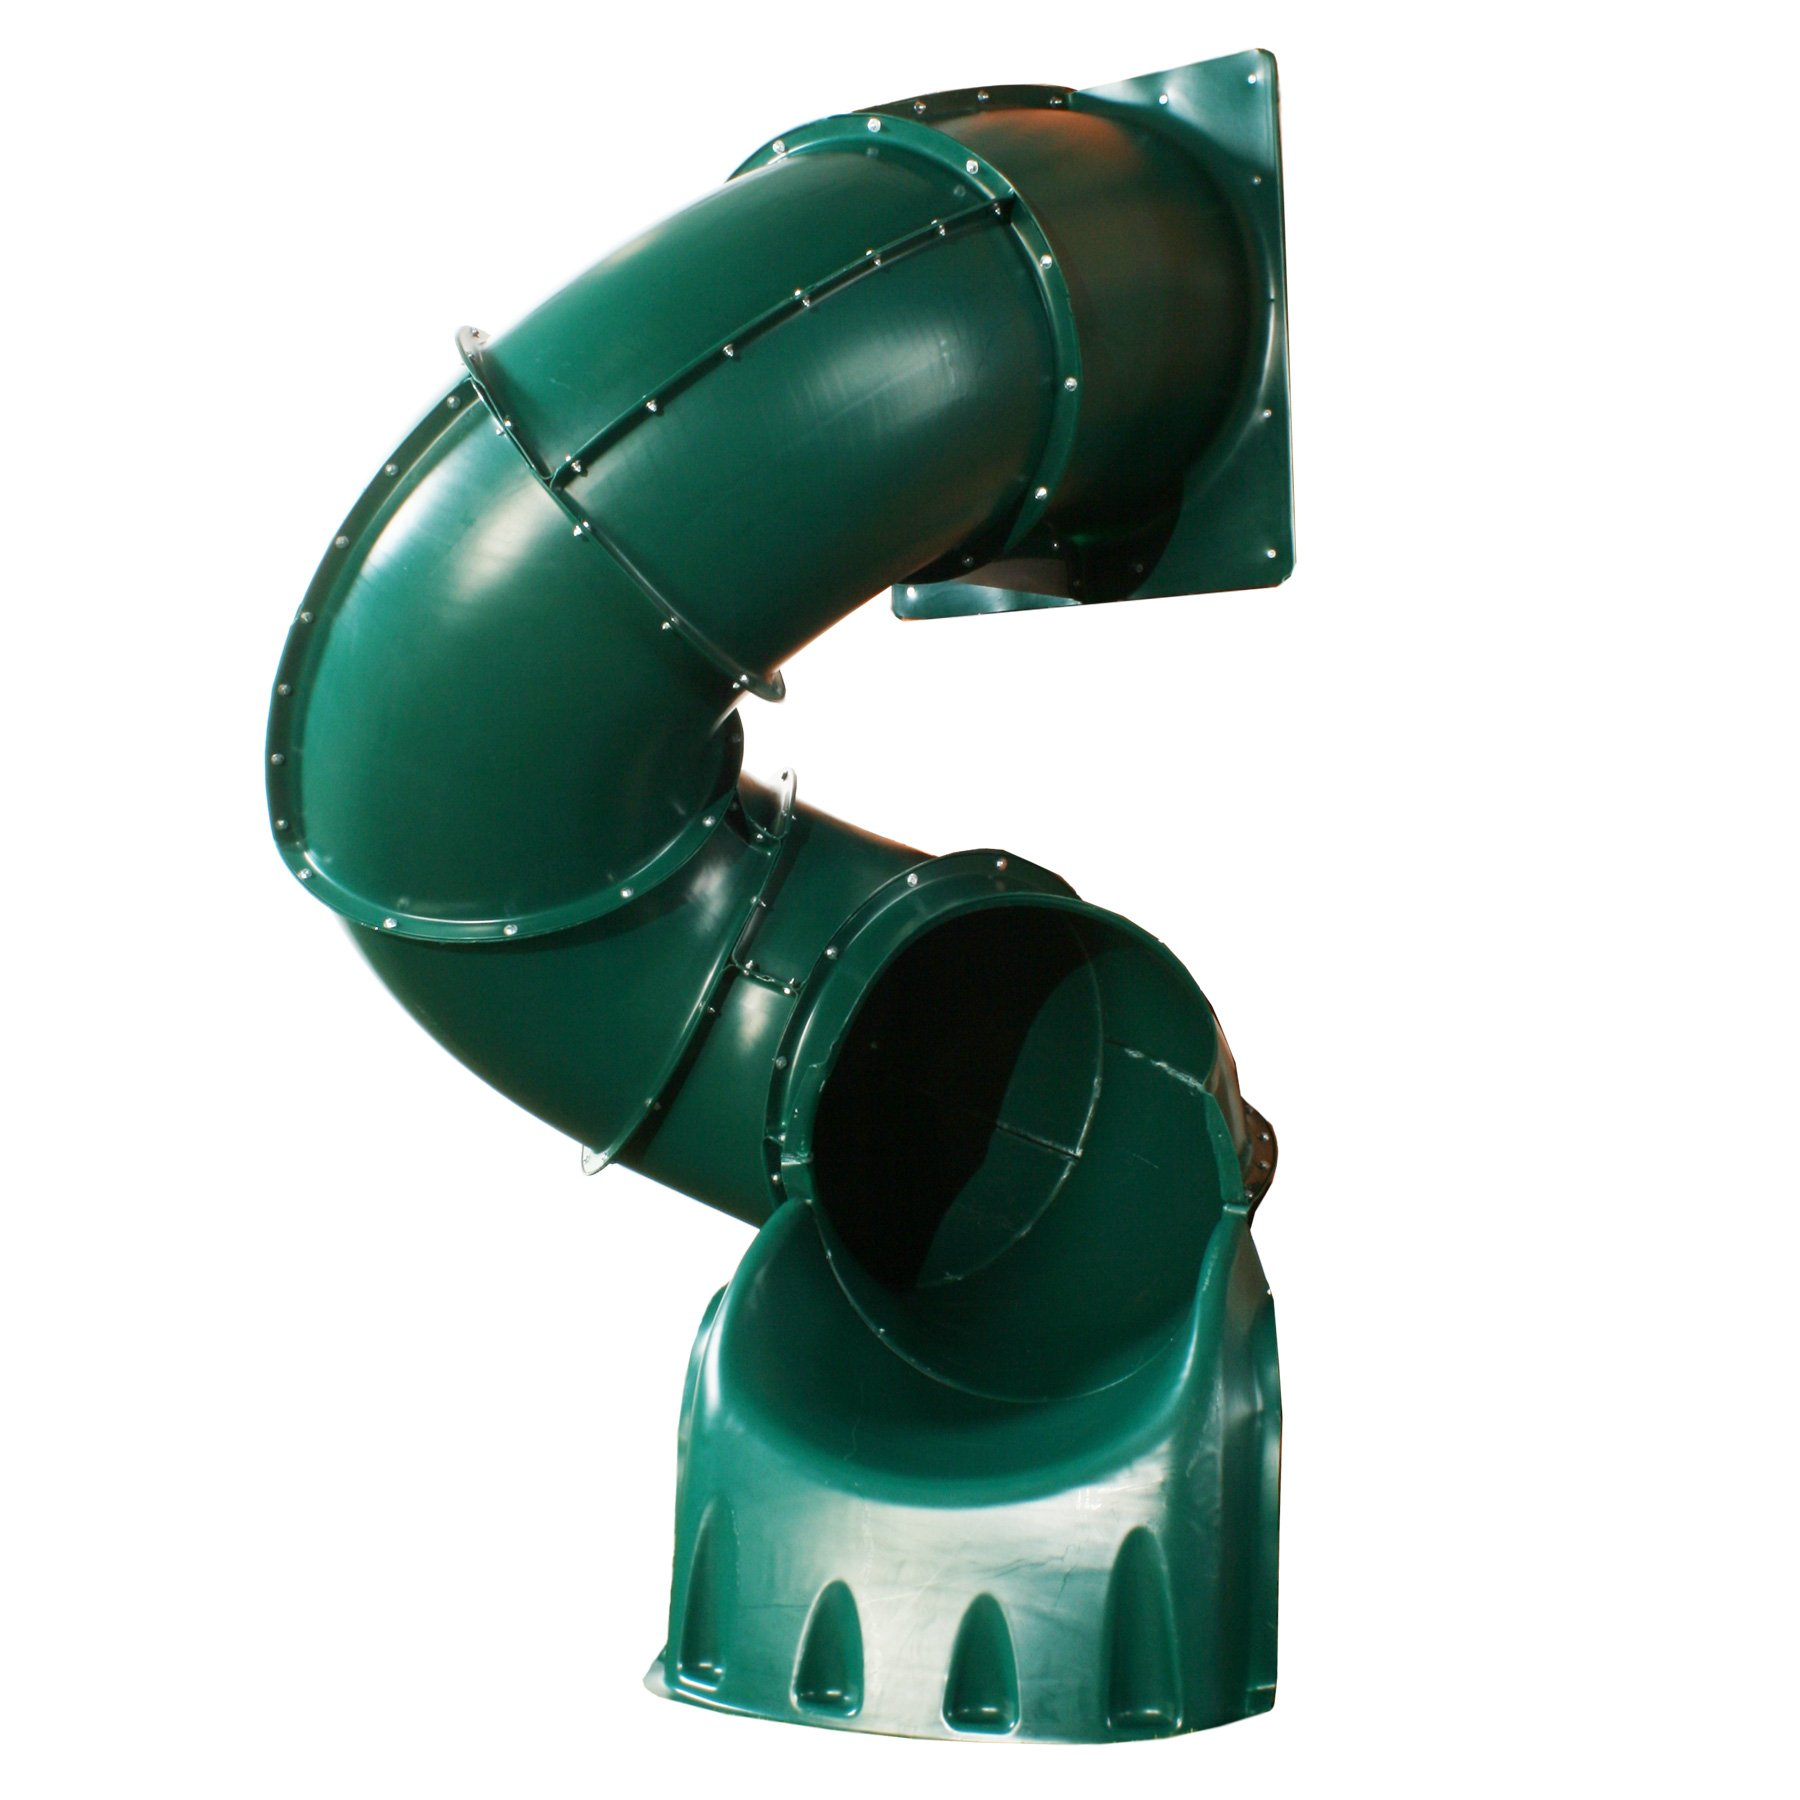 5 Ft Turbo Tube Slide Green by Swing-N-Slide (Image #2)